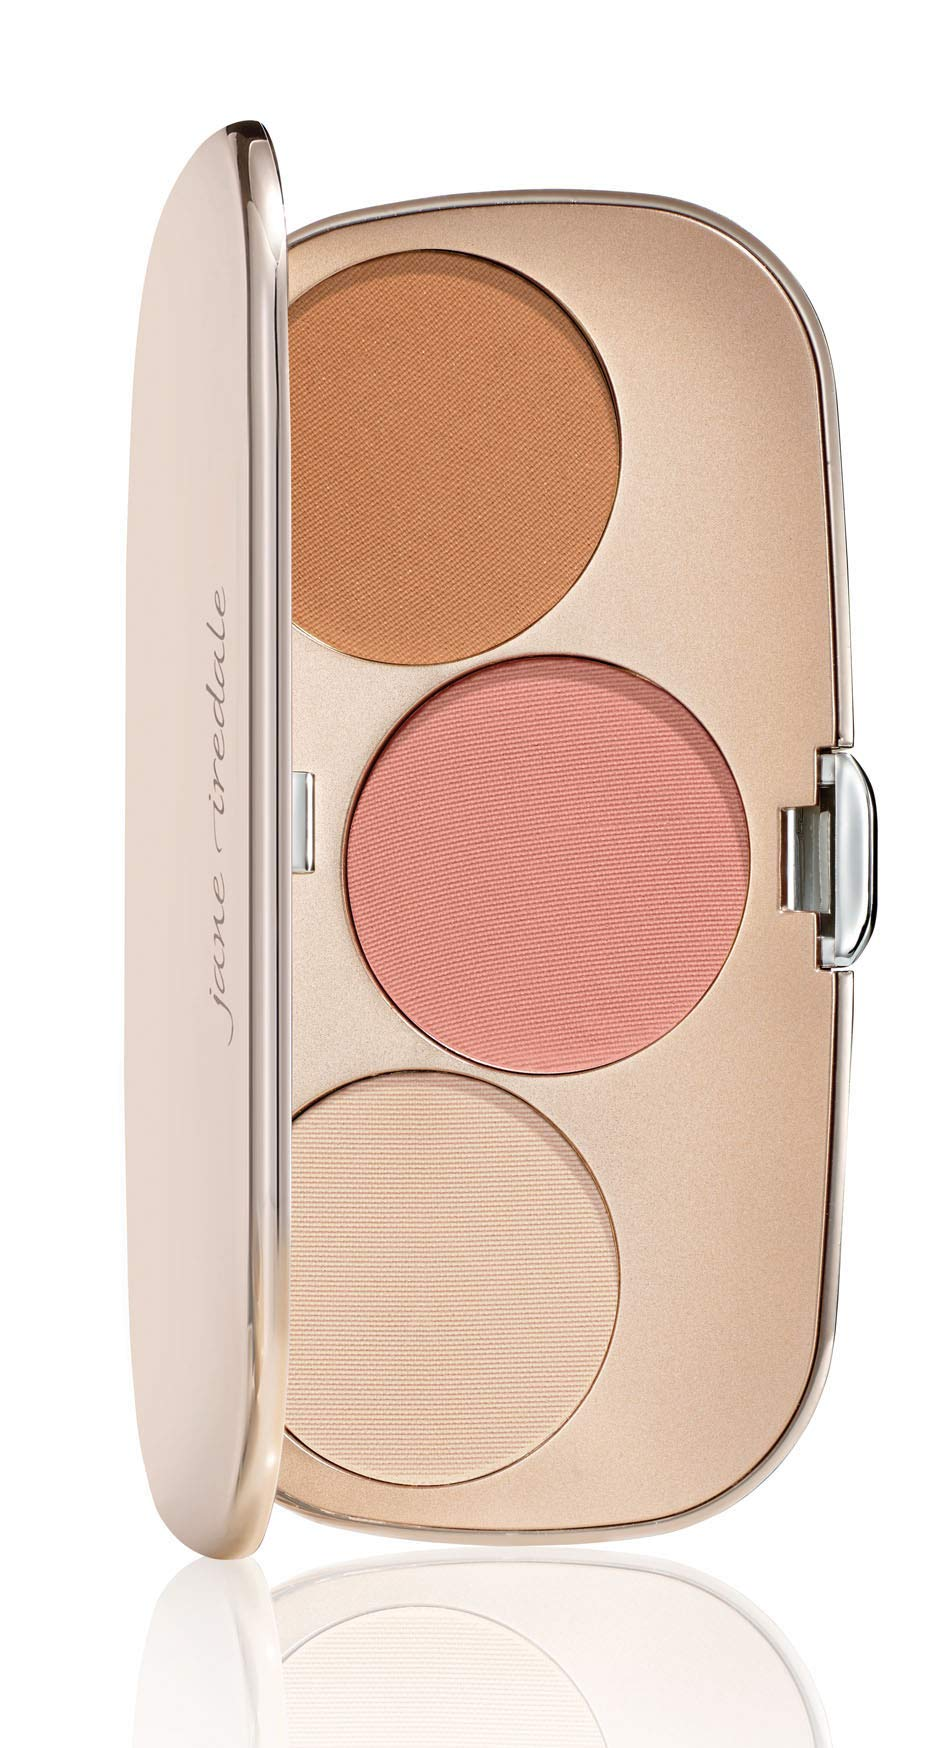 GreatShape Contour Kit, Cool by jane iredale